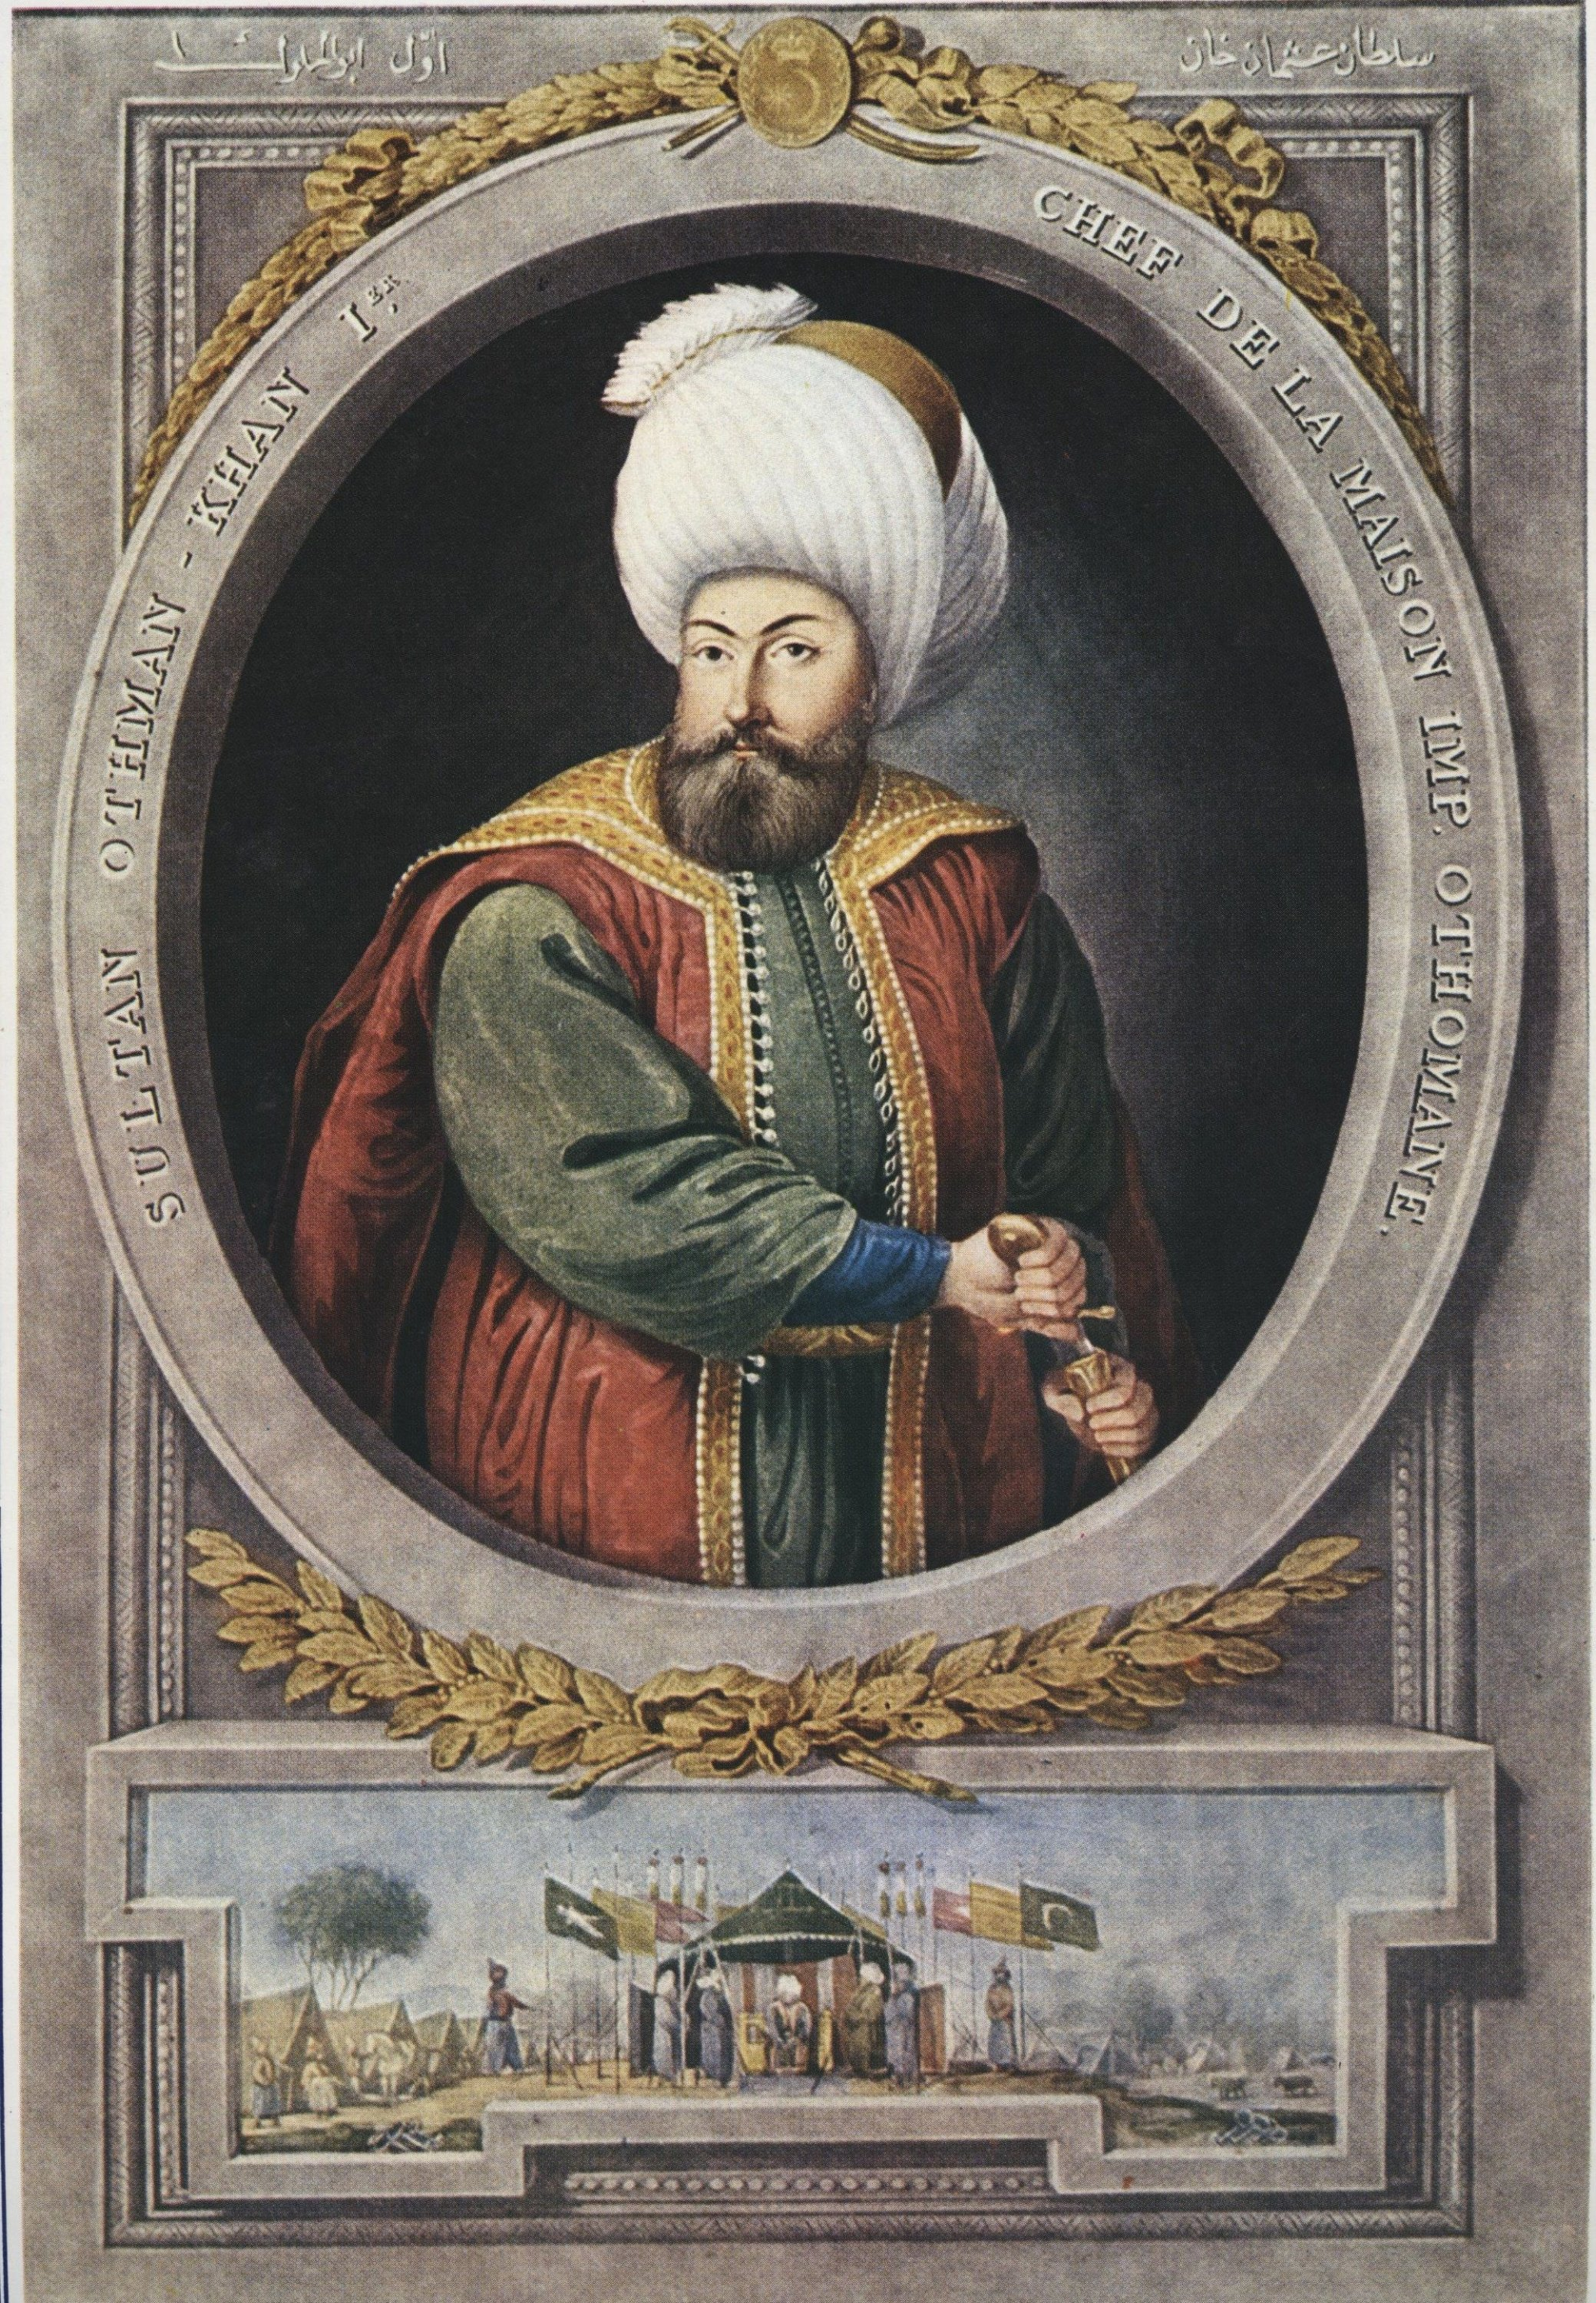 Osman I or Osman Gazi was the founder of the Ottoman dynasty. (Wikimedia Commons)